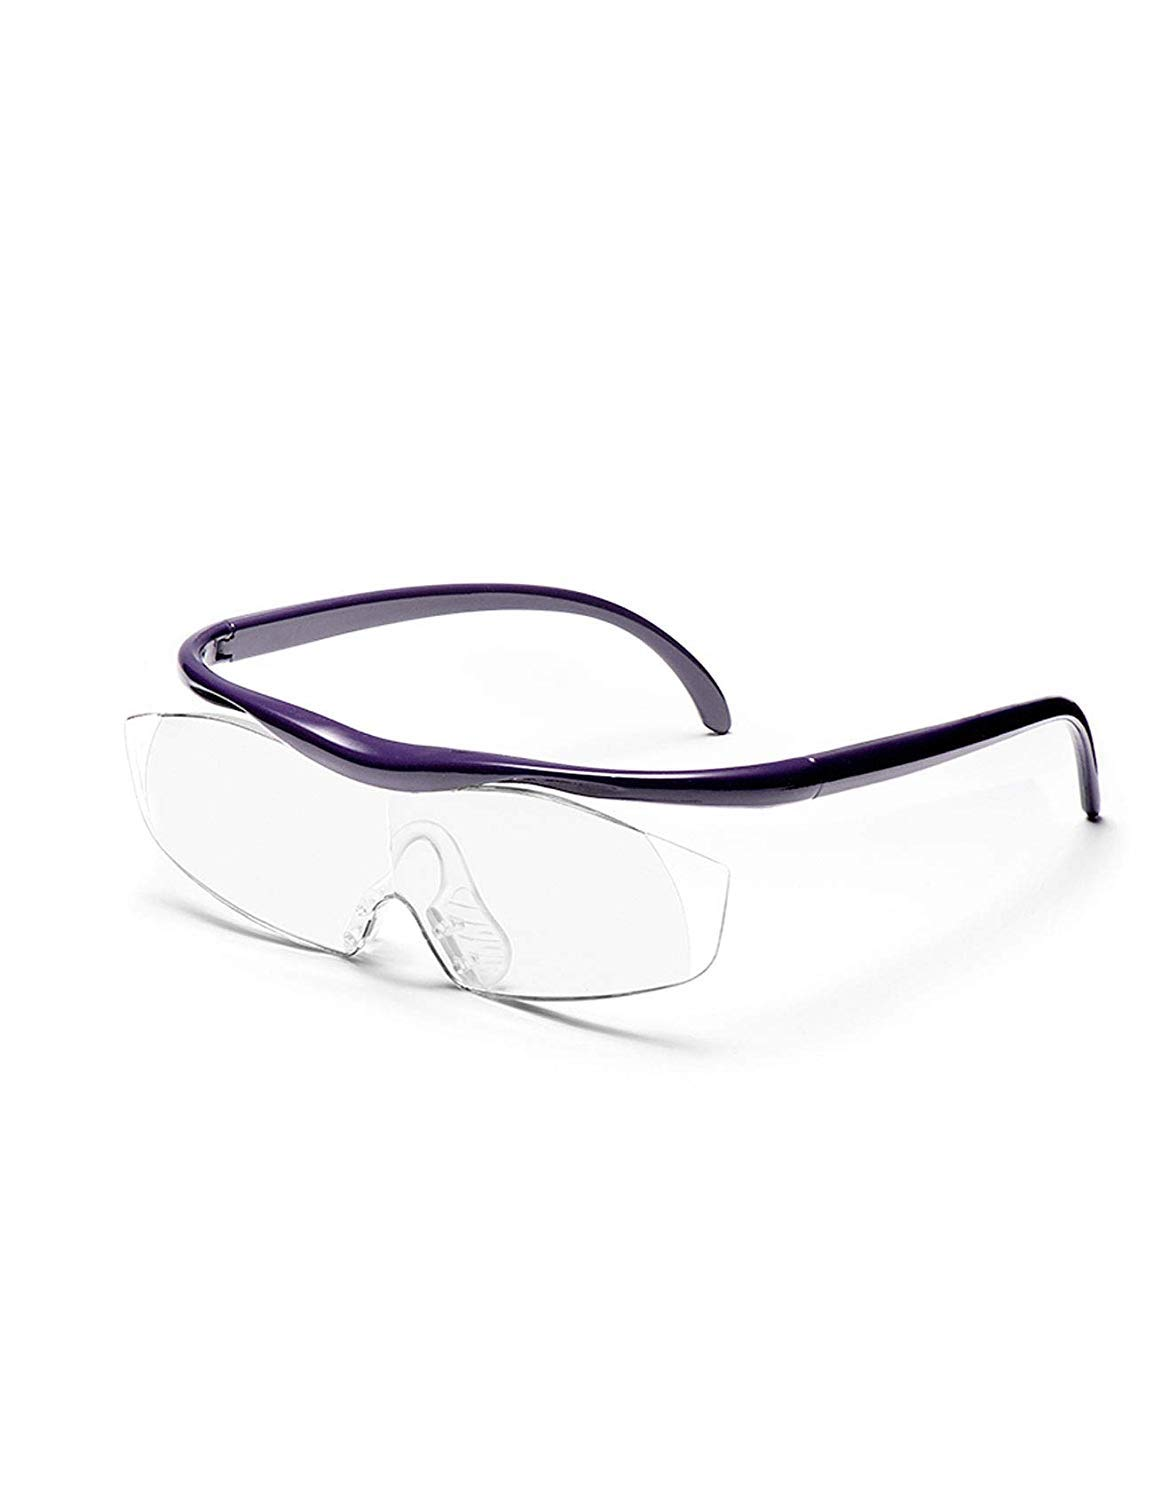 Glasses type Magnifying Glass, Portable High definition